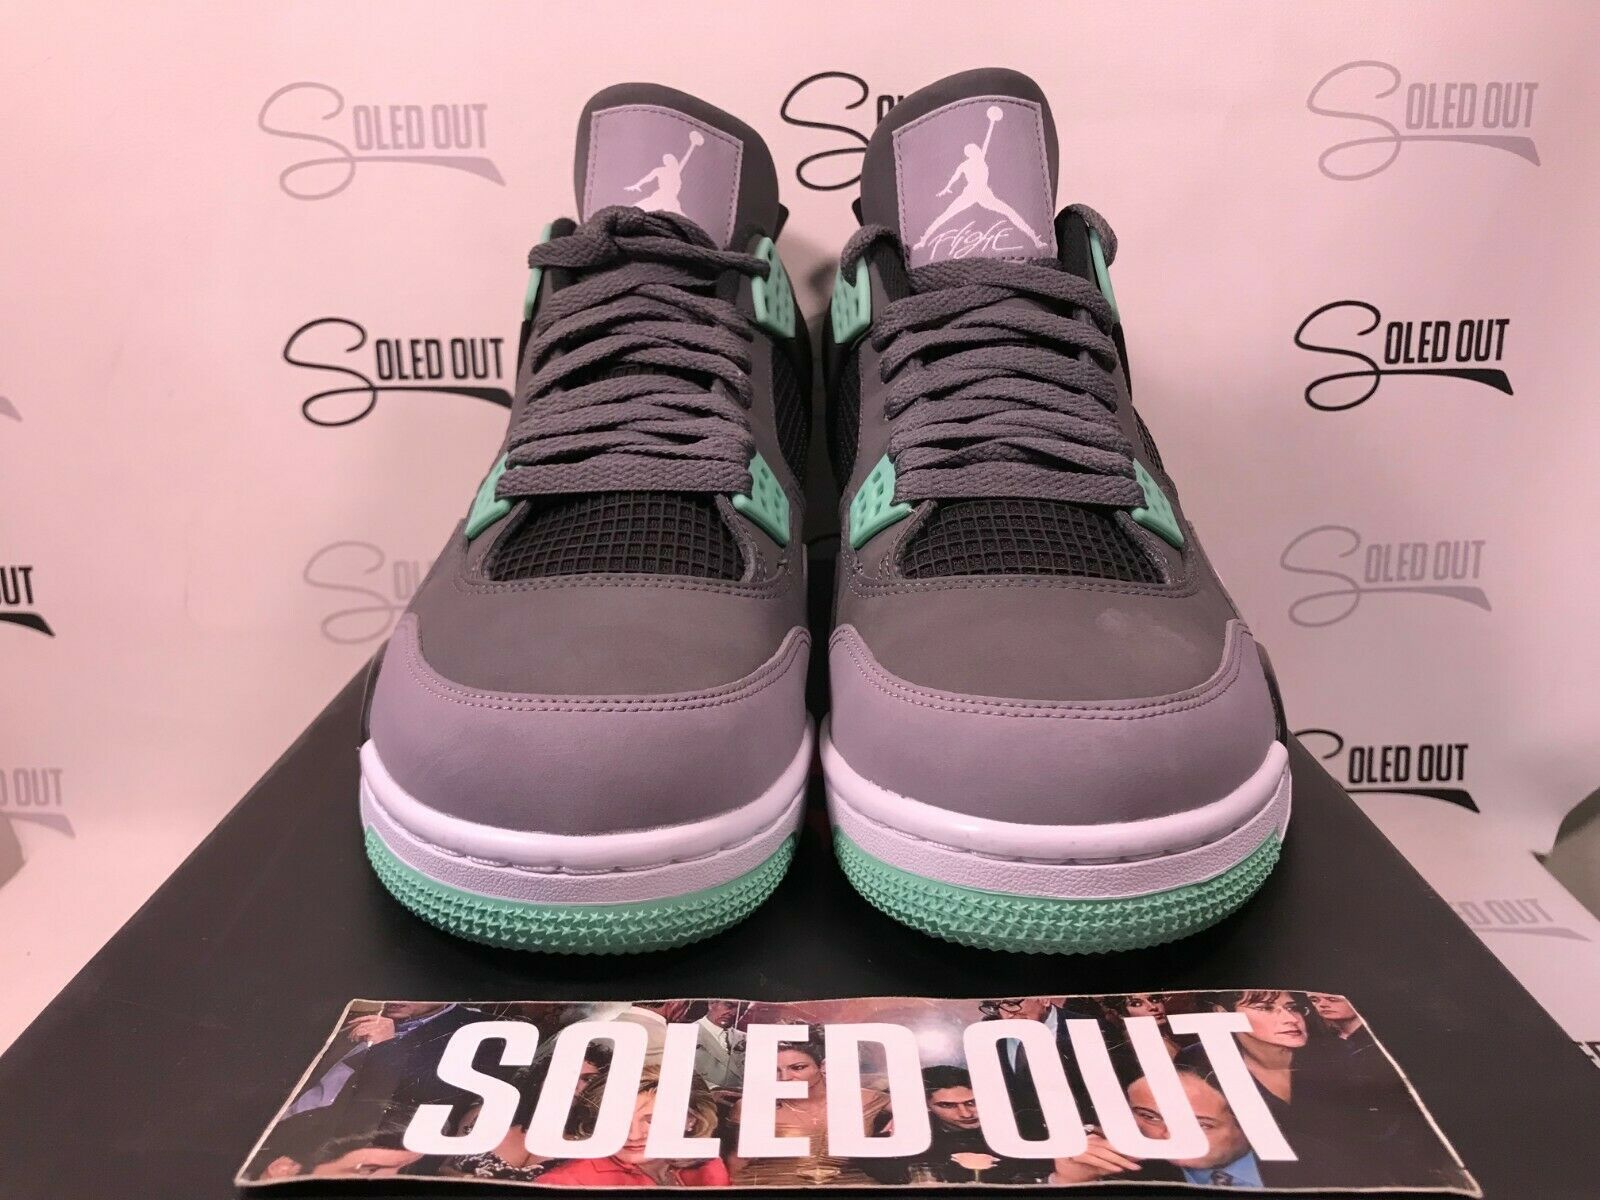 AIR JORDAN 4 RETRO  GREEN GLOW  2013 ITEM NUMBER 5950-7